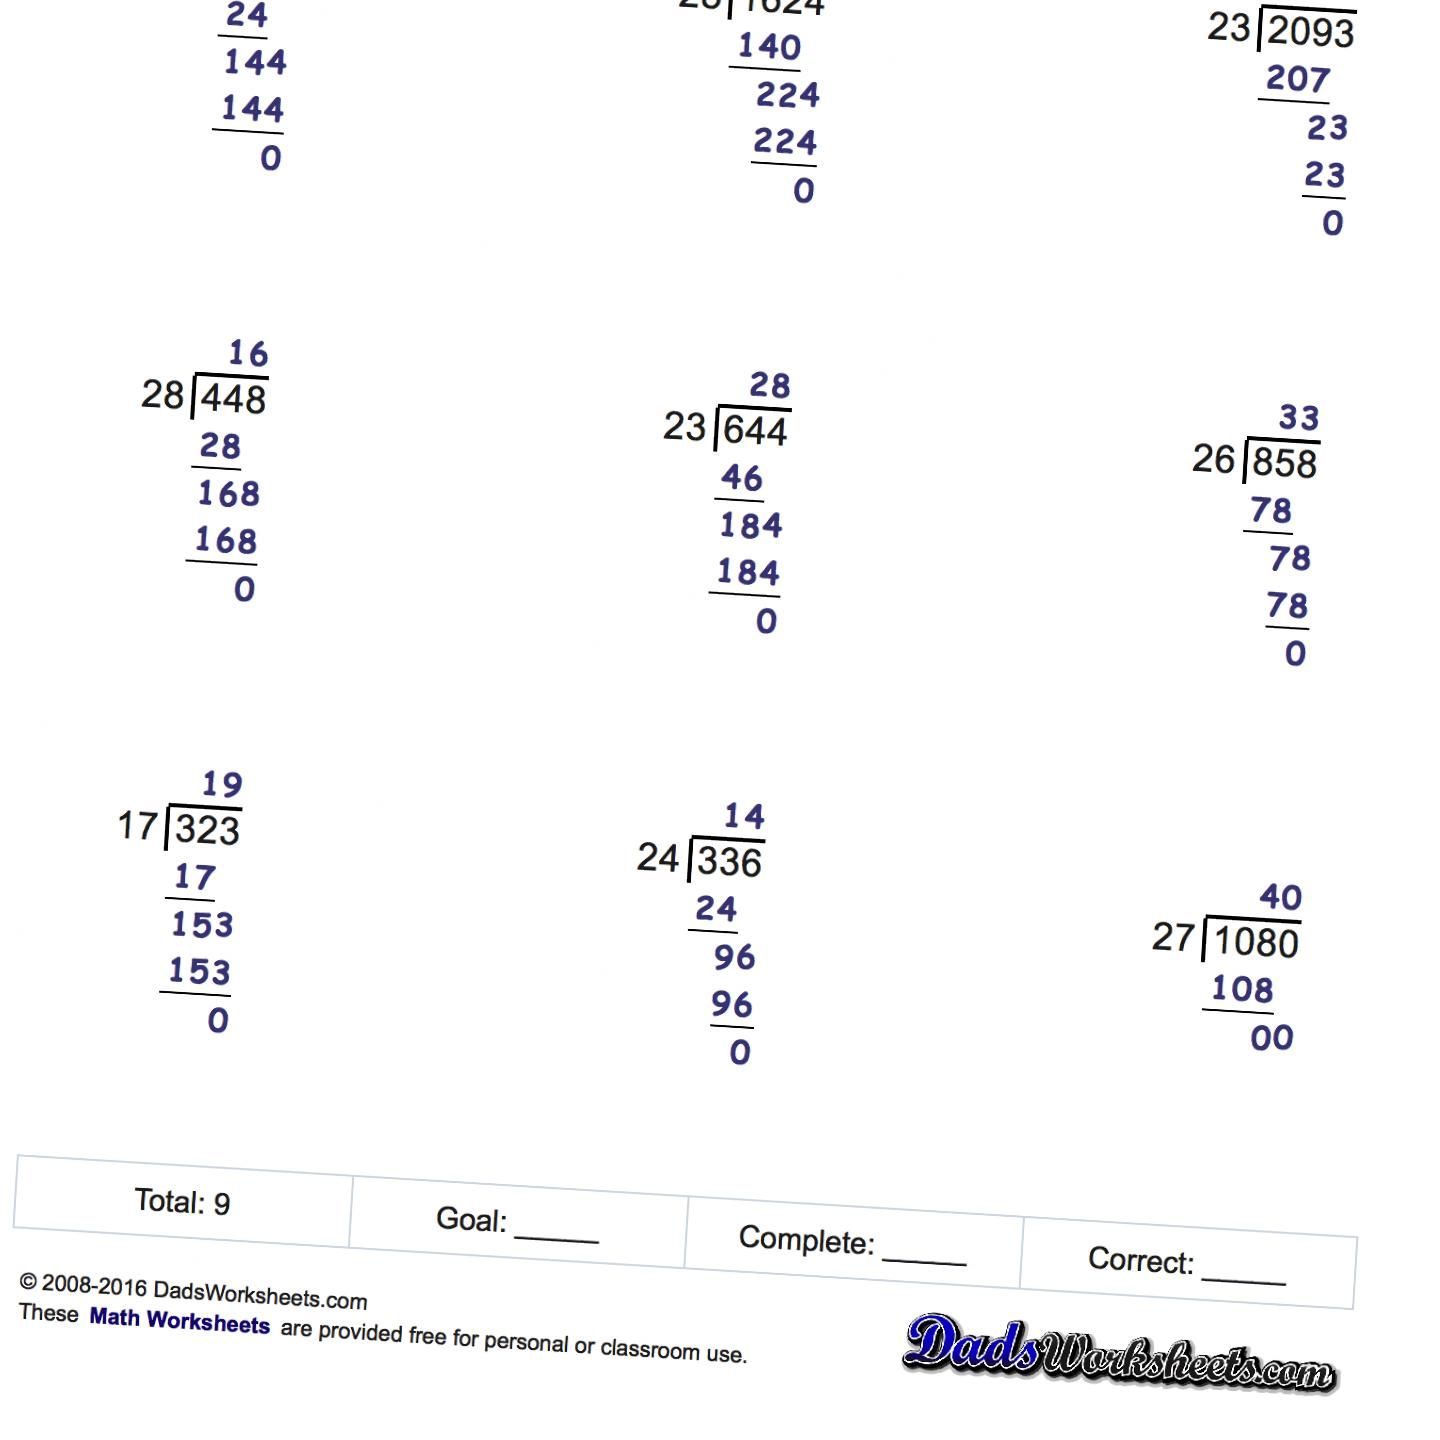 Long Division Worksheets Printable With Answer Keys That Show All The Work Great For Student